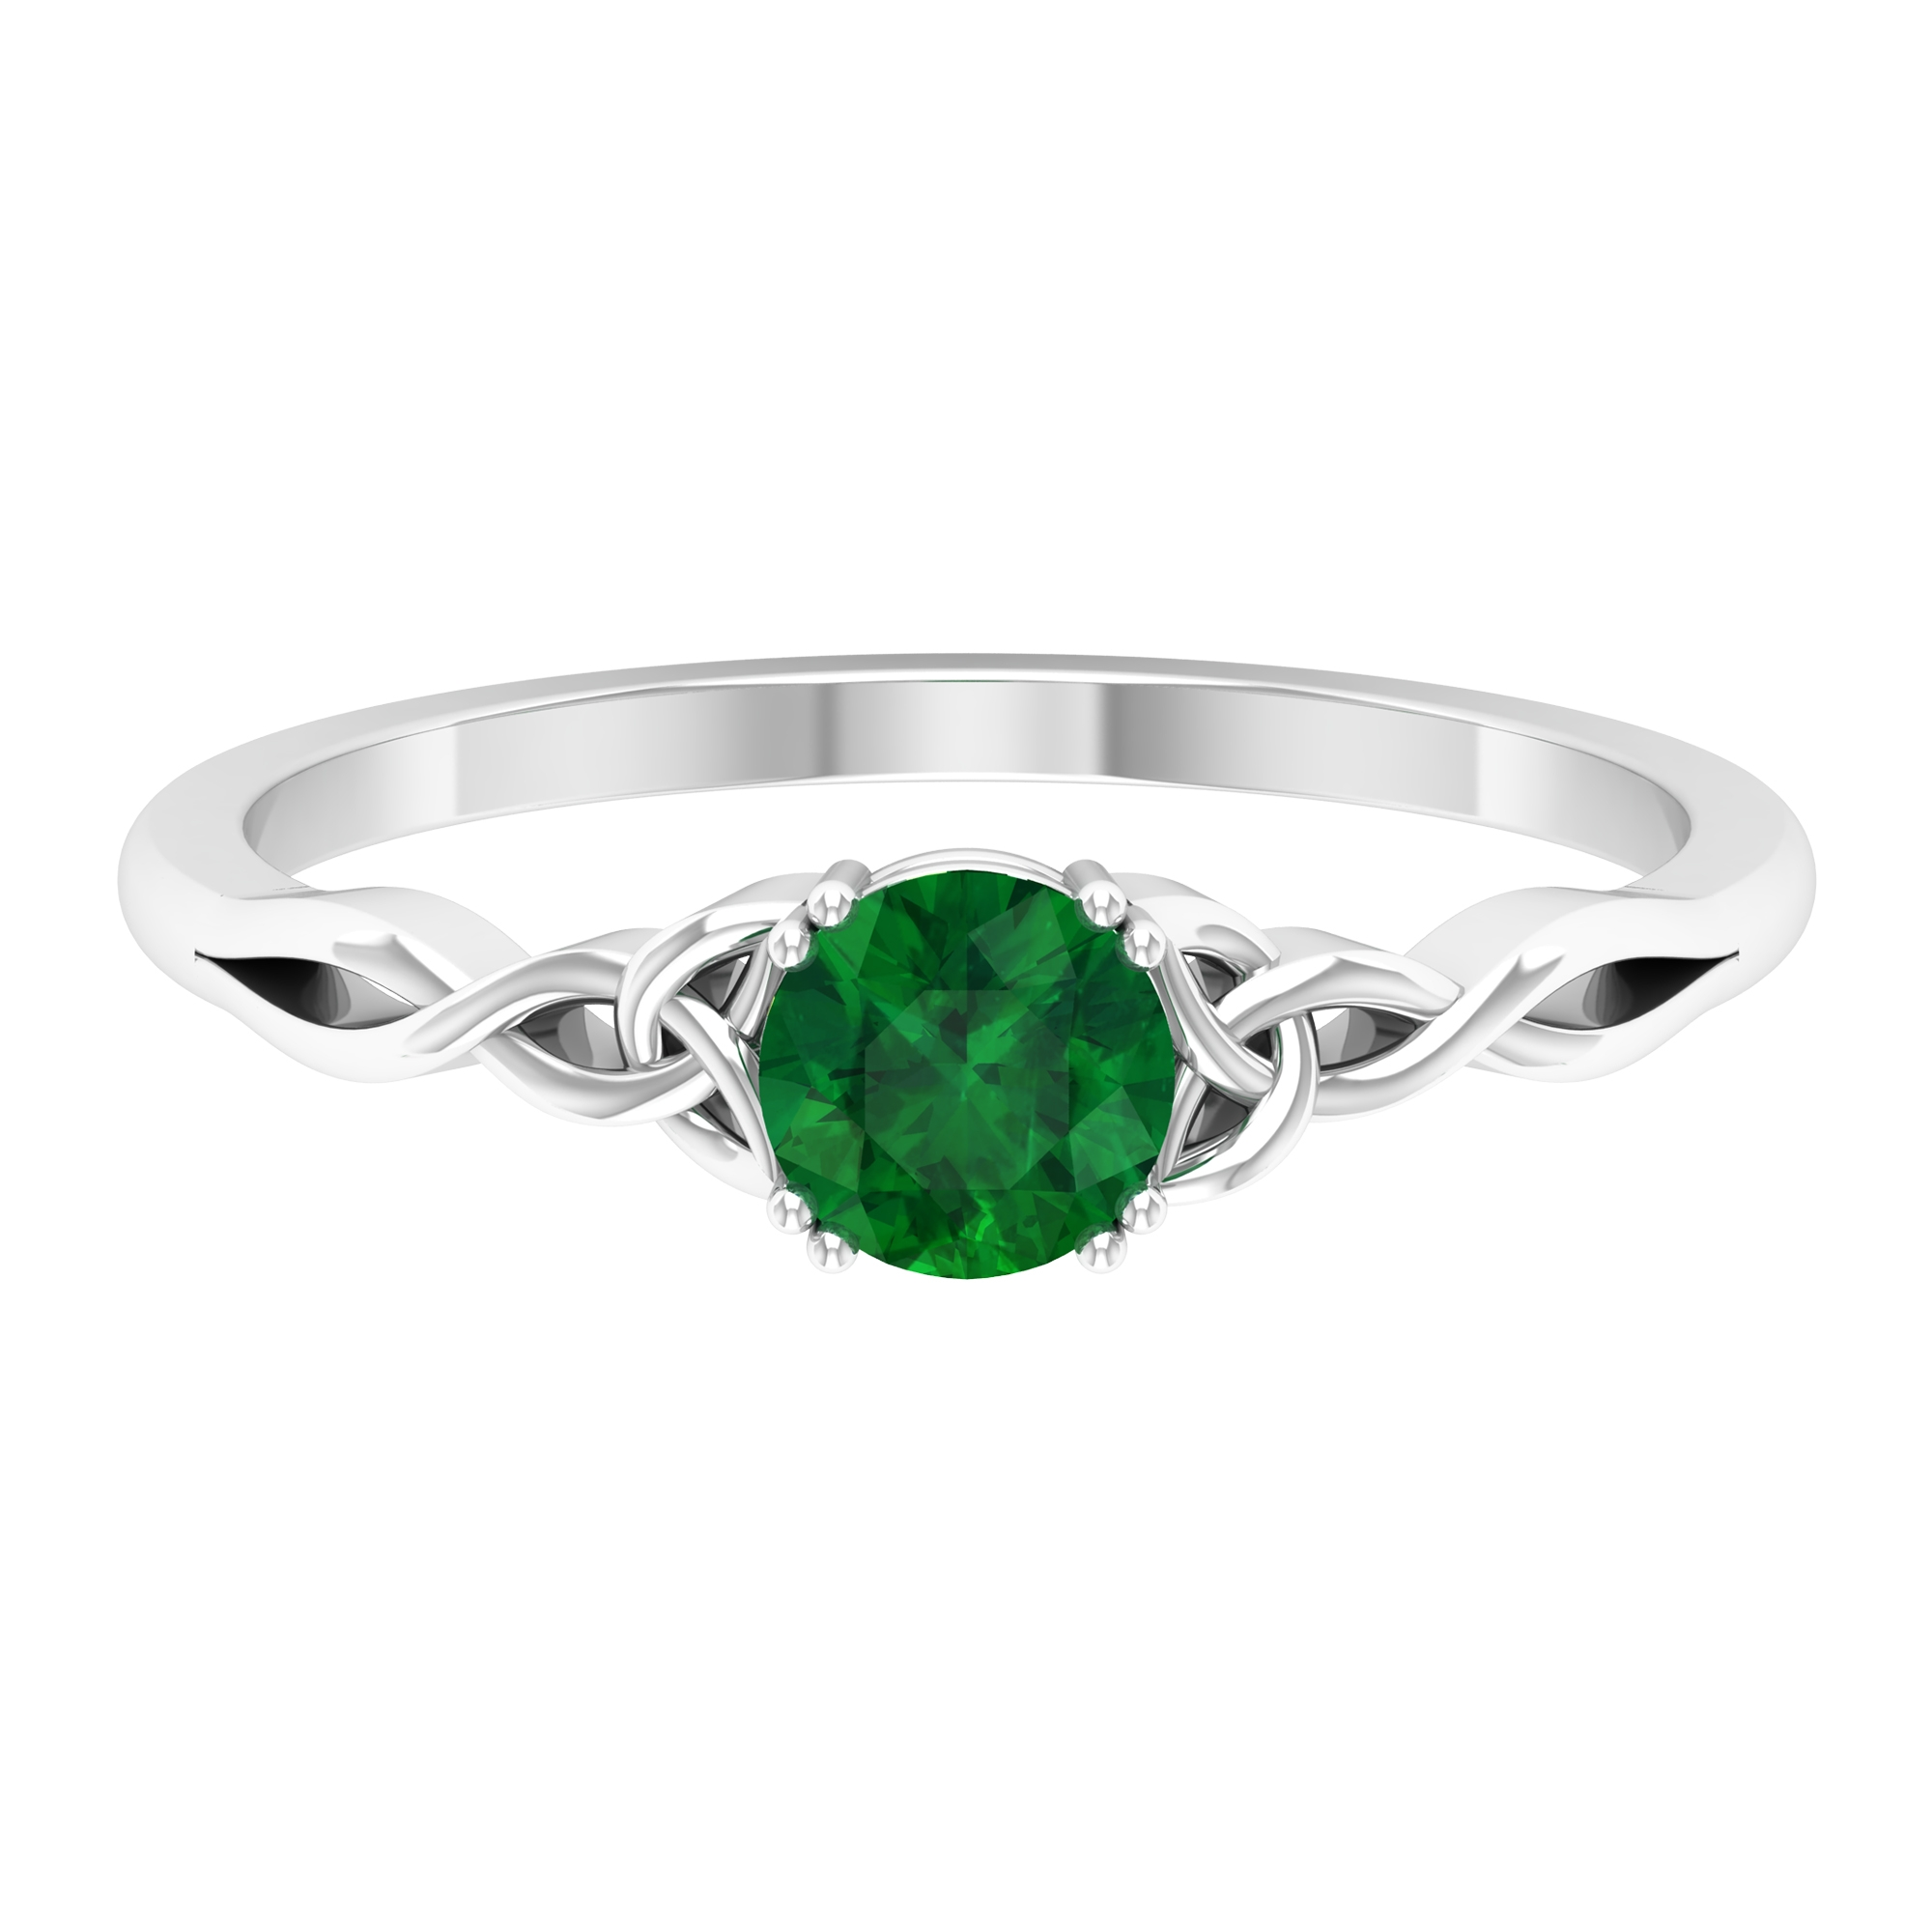 5 MM Round Cut Emerald Solitaire Ring in Double Prong Setting with Celtic Shank